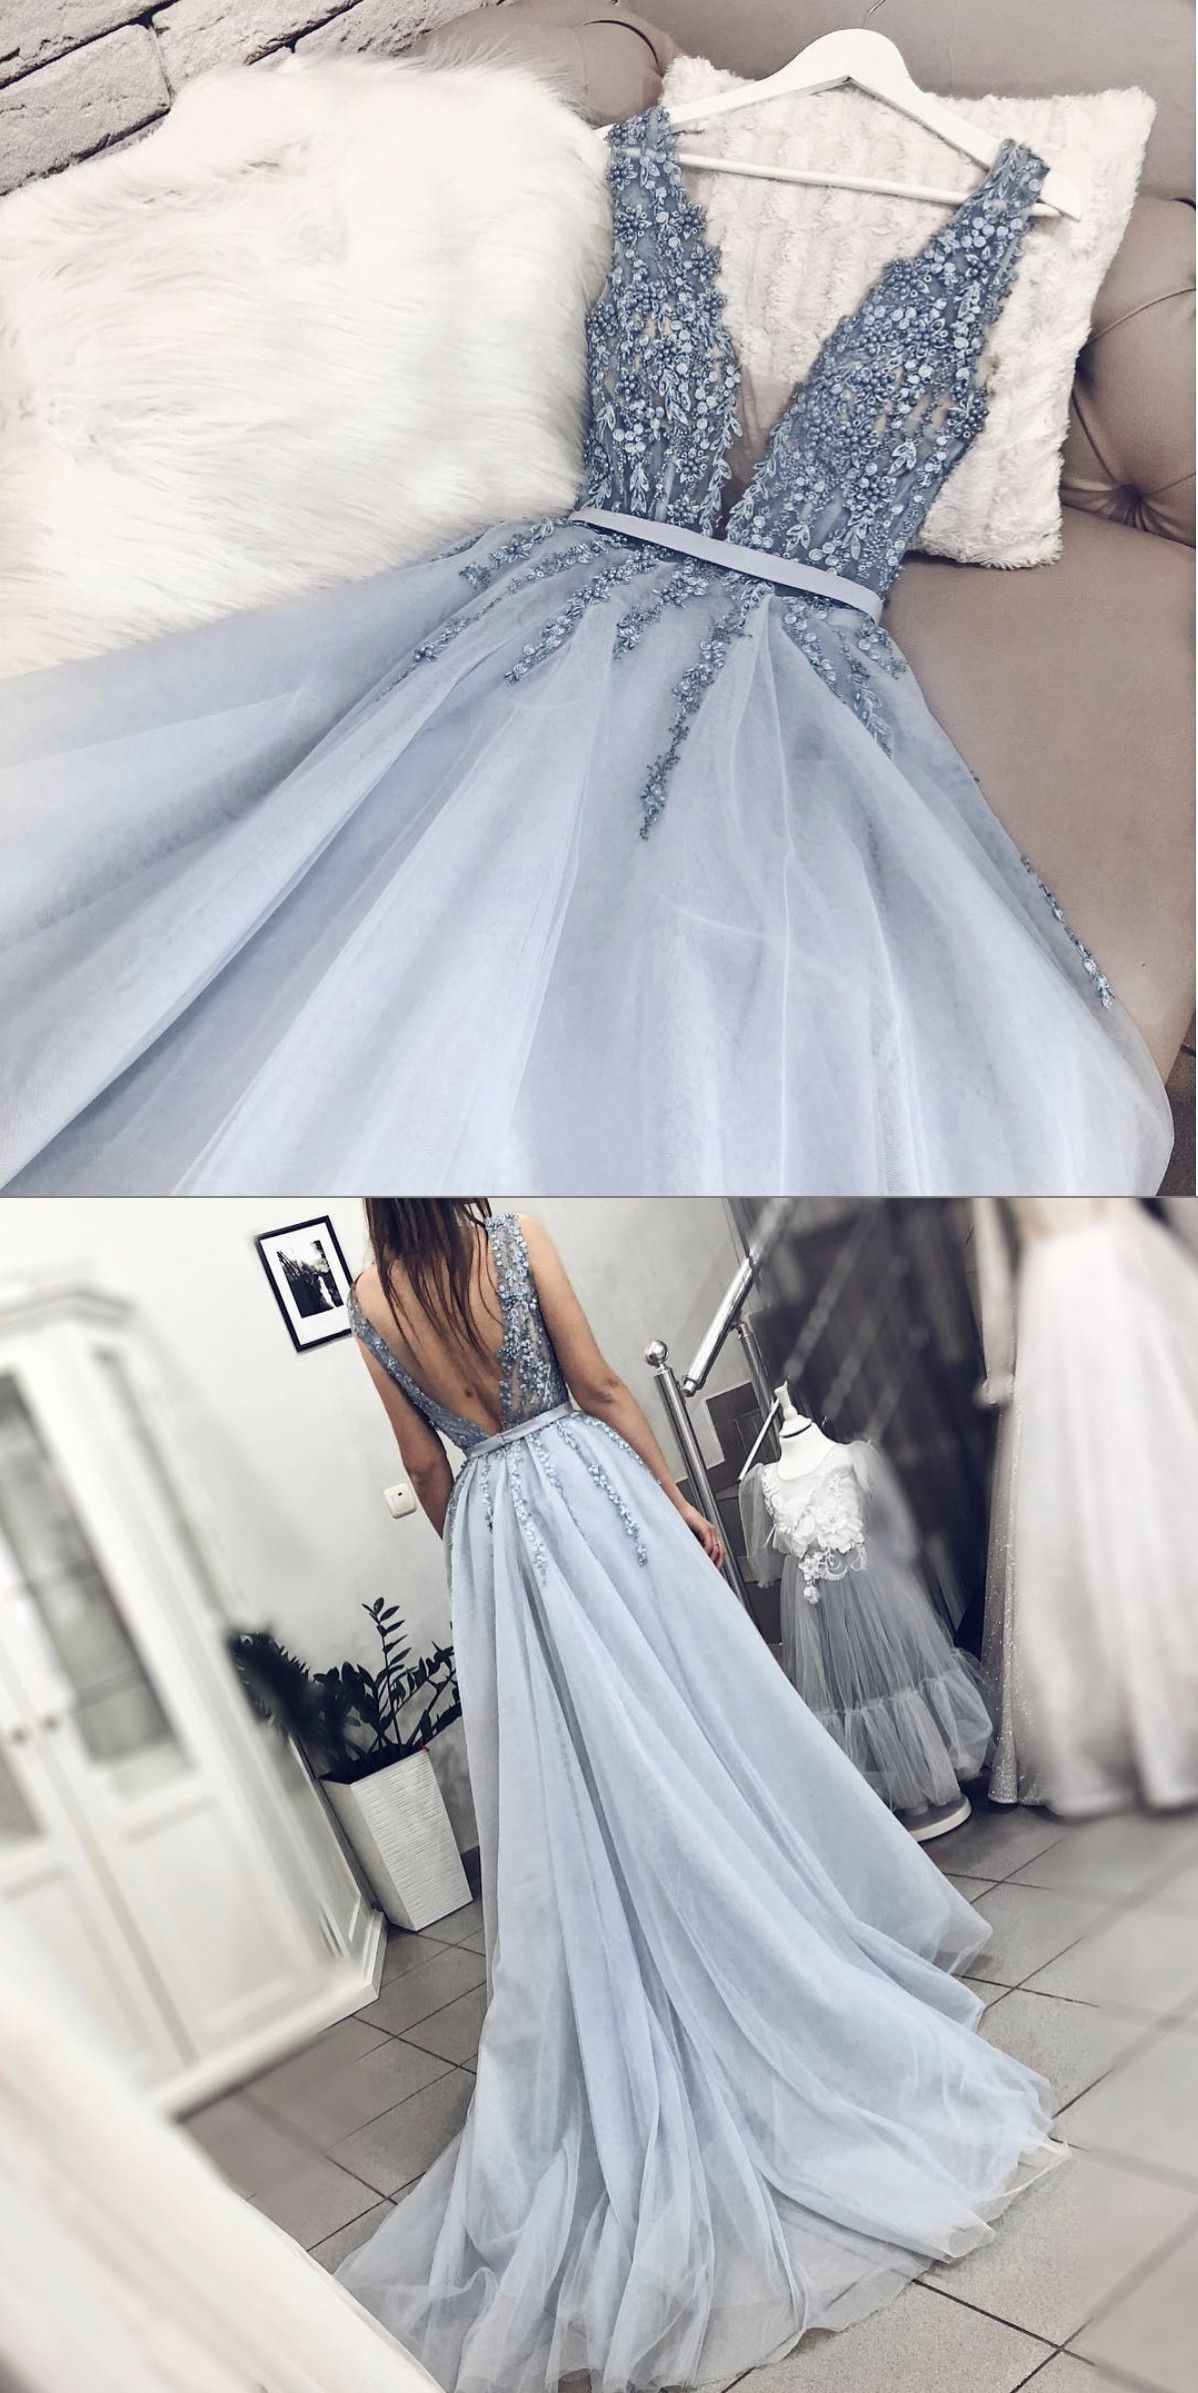 1ccdacaf9ad0 Light Blue A Line V Neck Backless Beaded Top Tulle Long Prom Dress, Backless  Light Blue Formal Dresses, Evening Dresses in 2019 | prom.